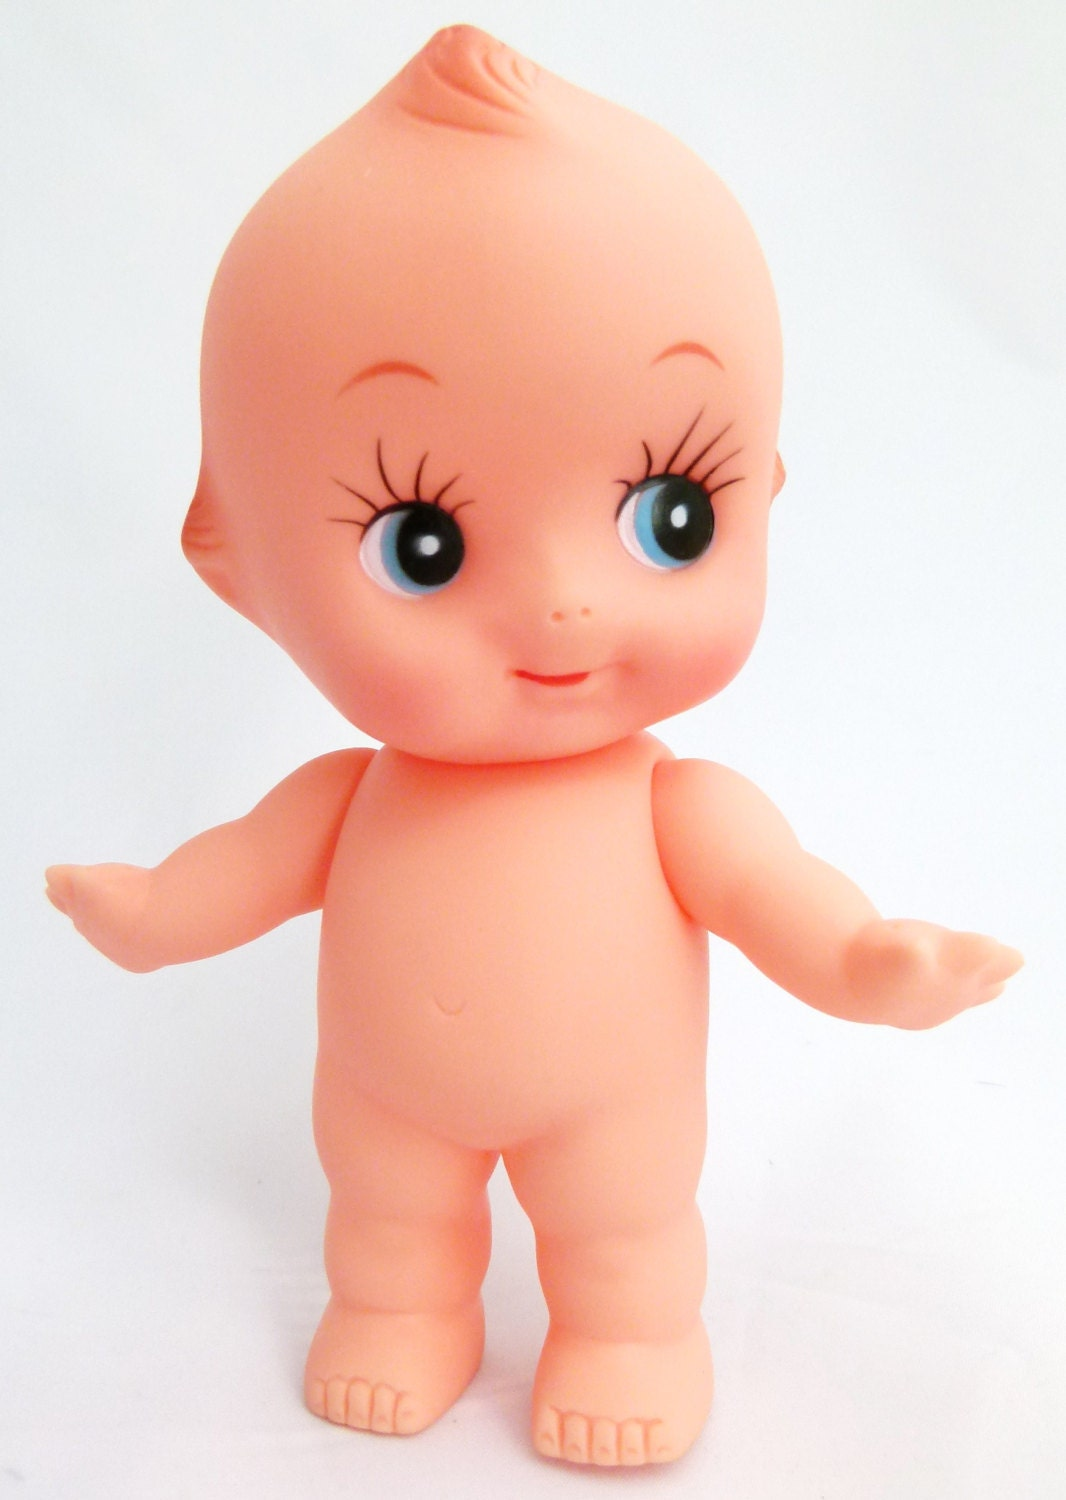 Dick Kewpie Barrett - Sportspress